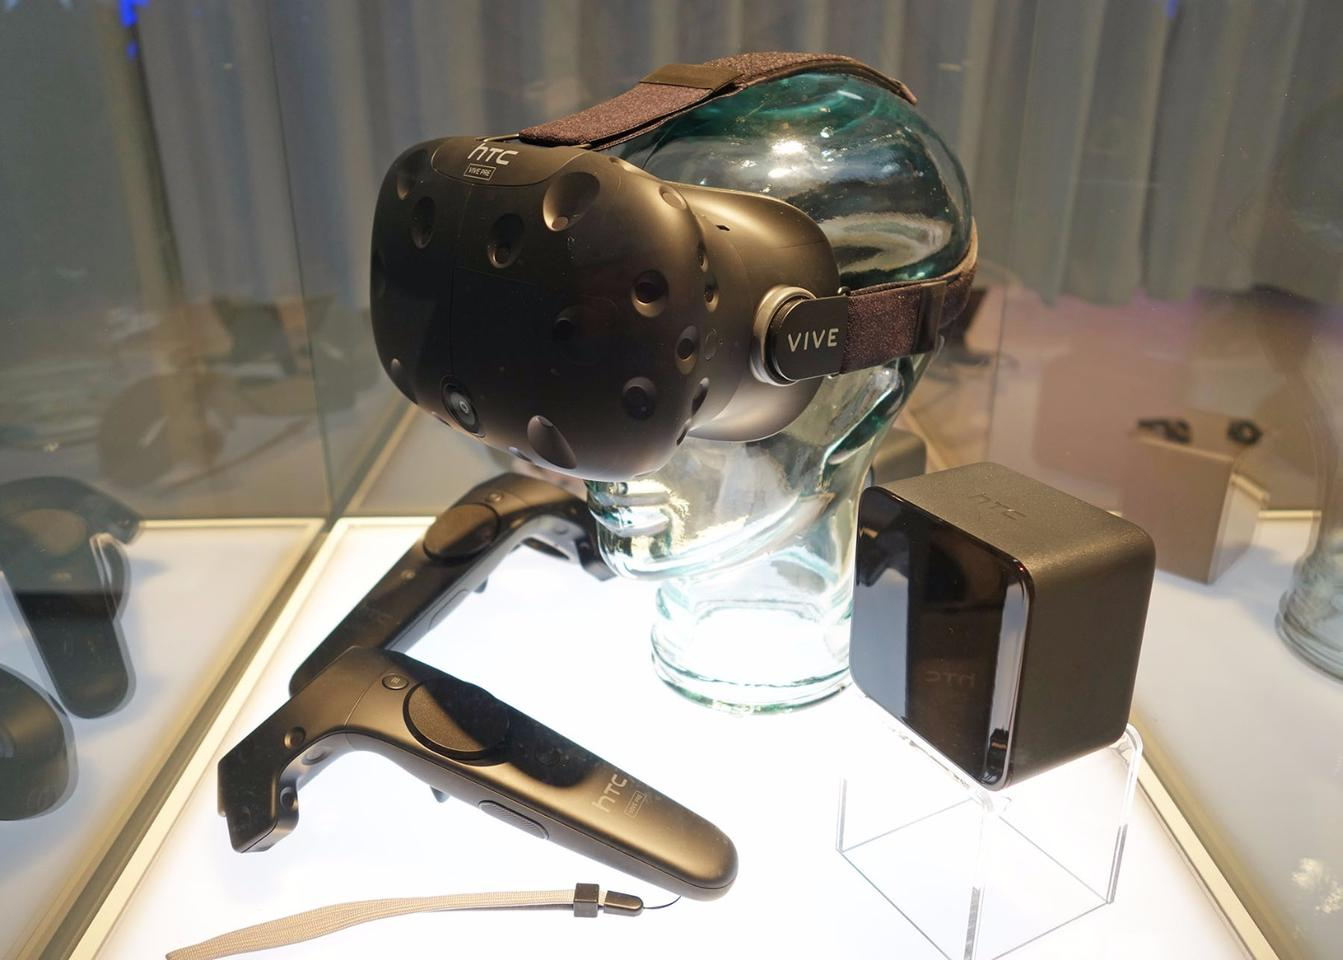 The HTC VIve already ships with its own controllers